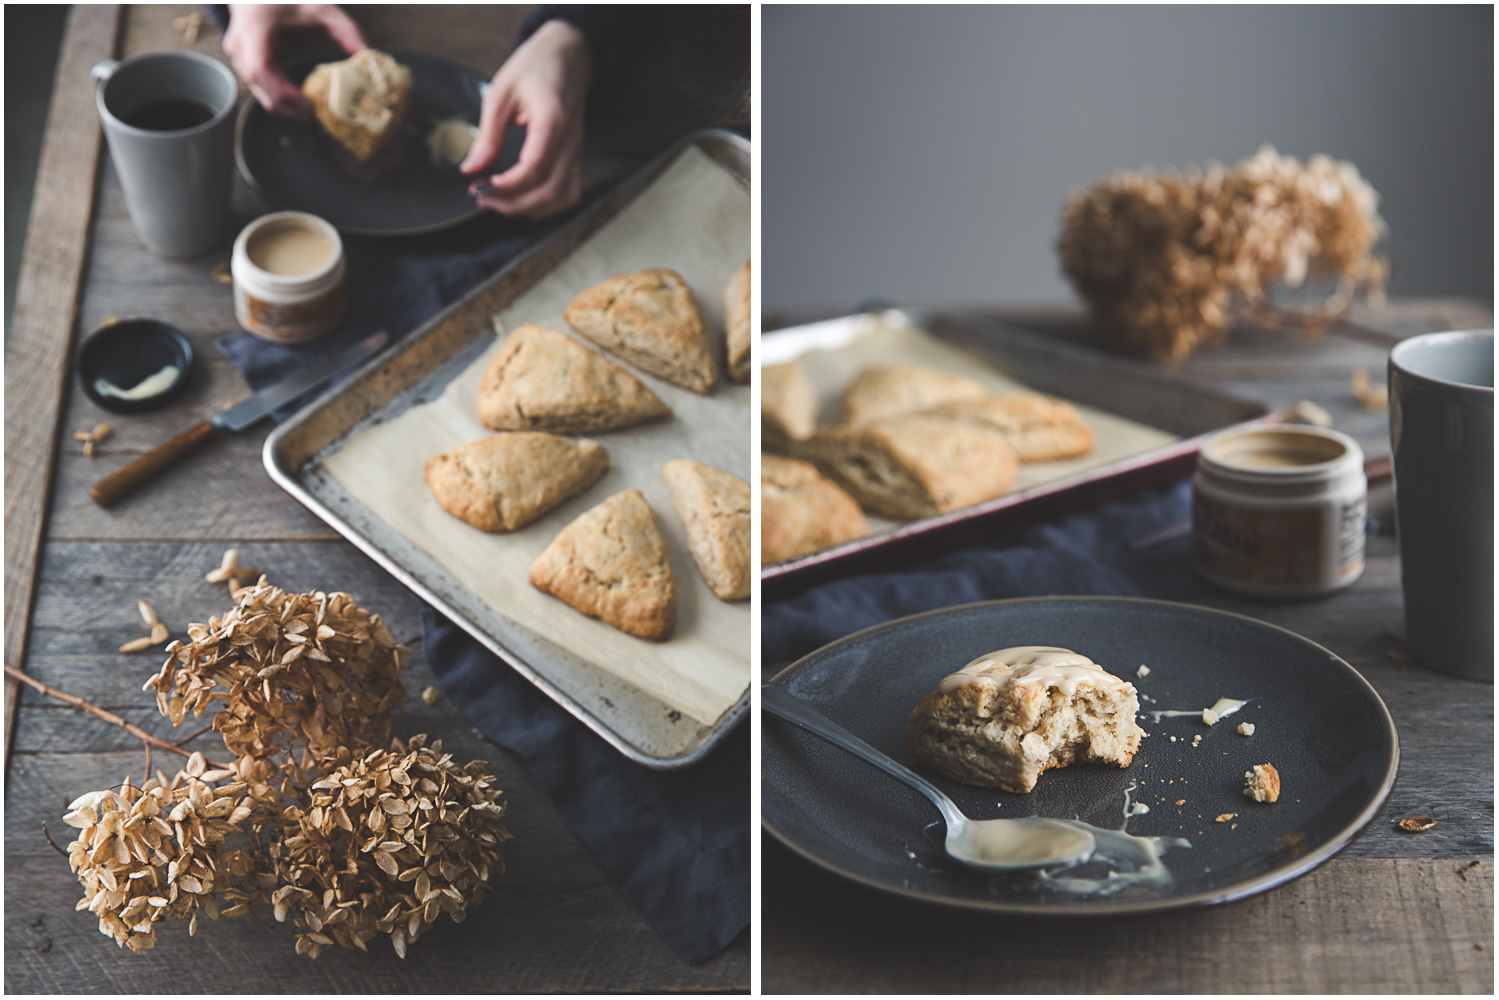 Spiced scones being enjoyed with maple cream and coffee